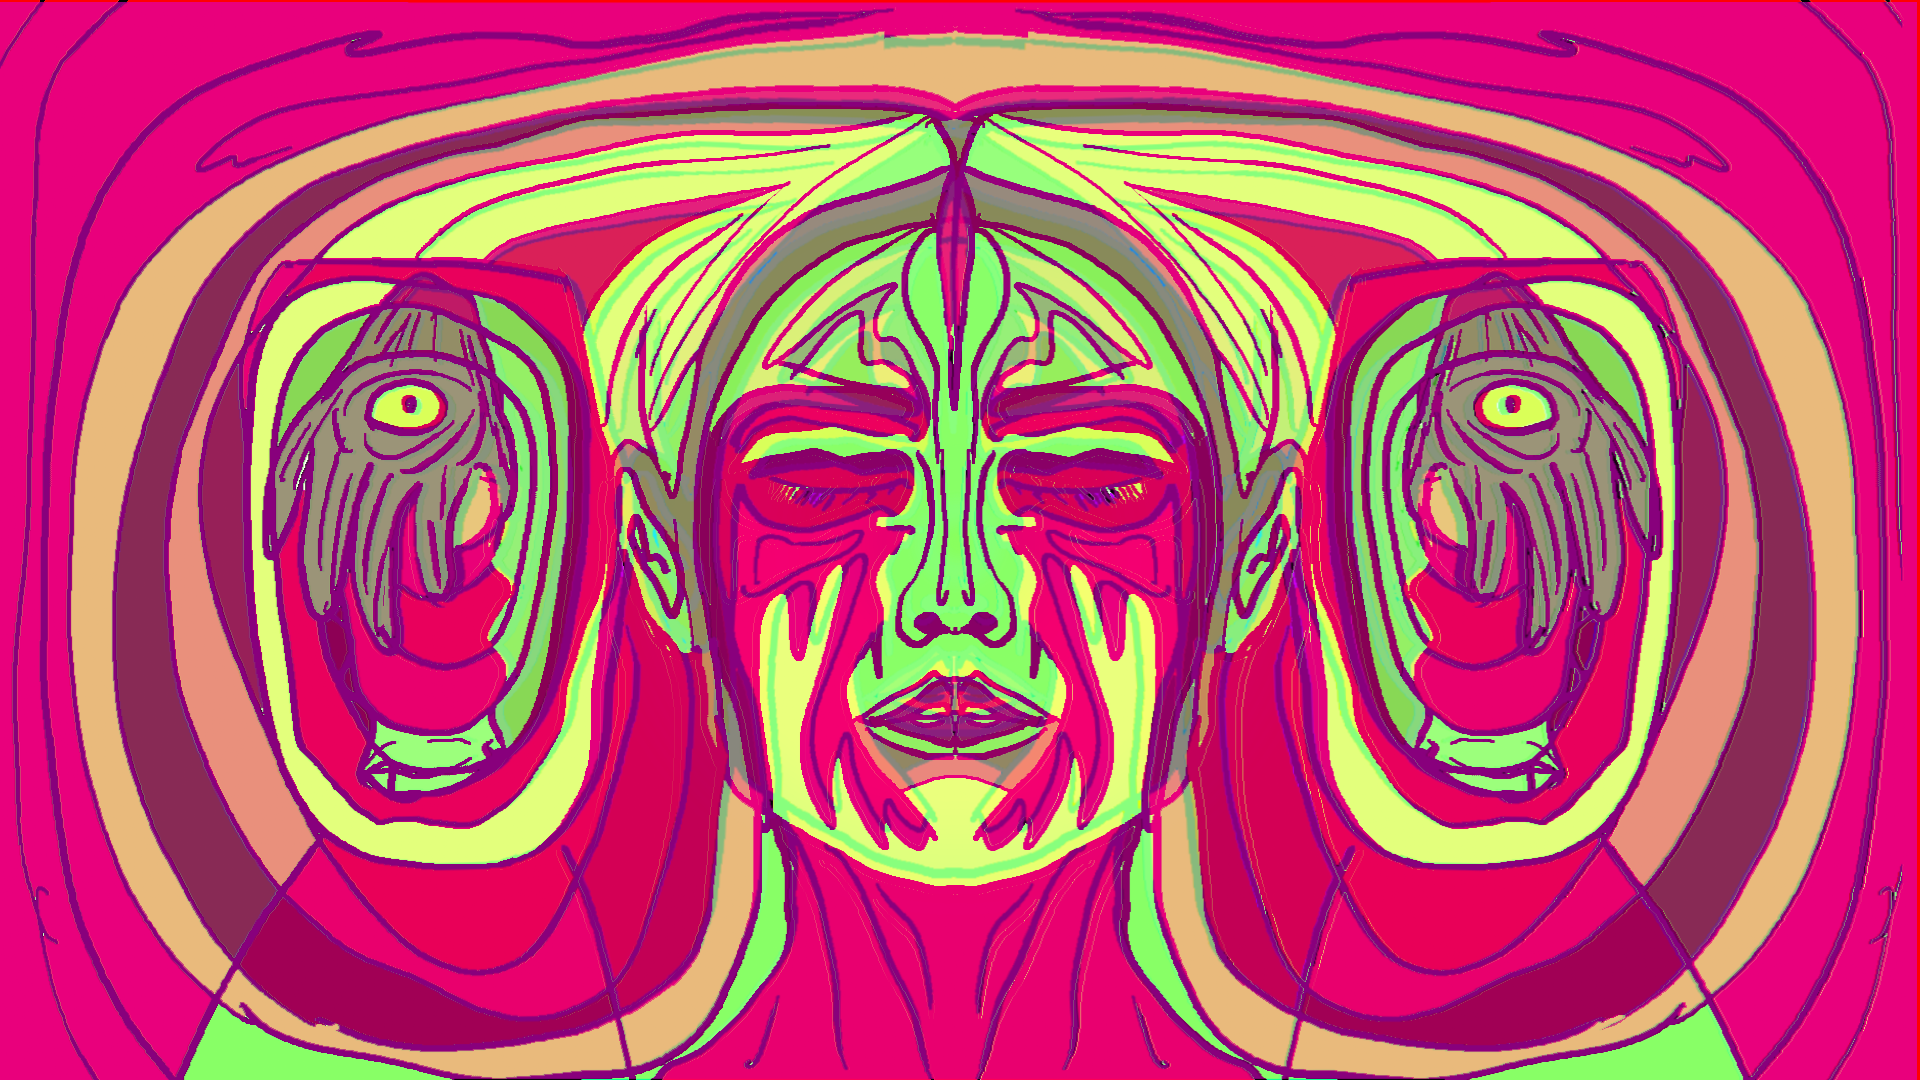 Phydelic thing